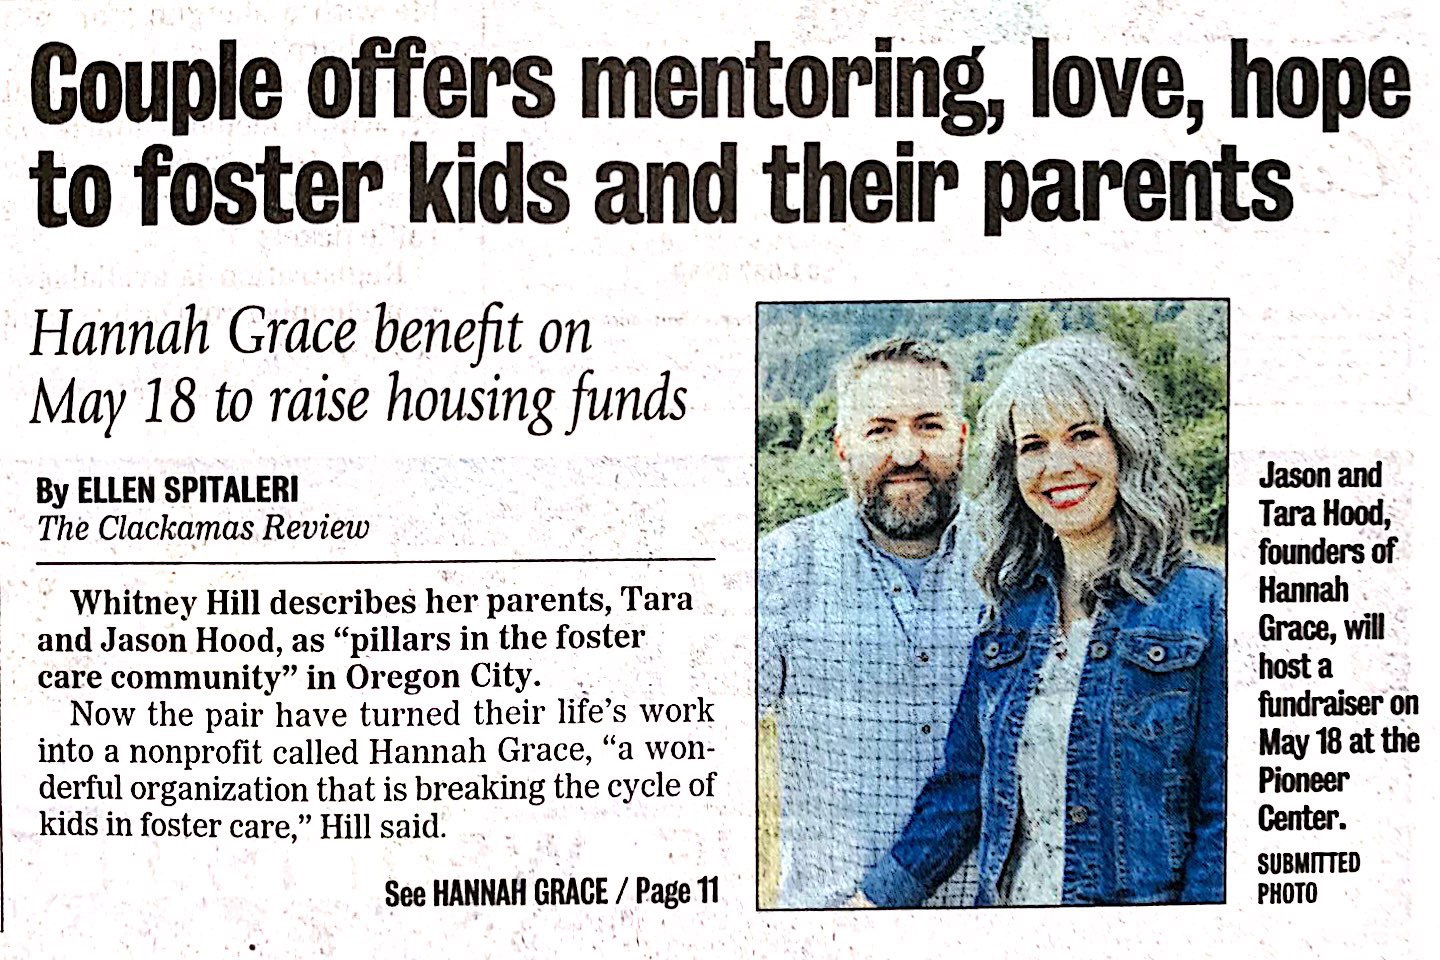 Clackamas Review/ Oregon City News - Featuring Hannah Grace Founder's Jason and Tara Hood